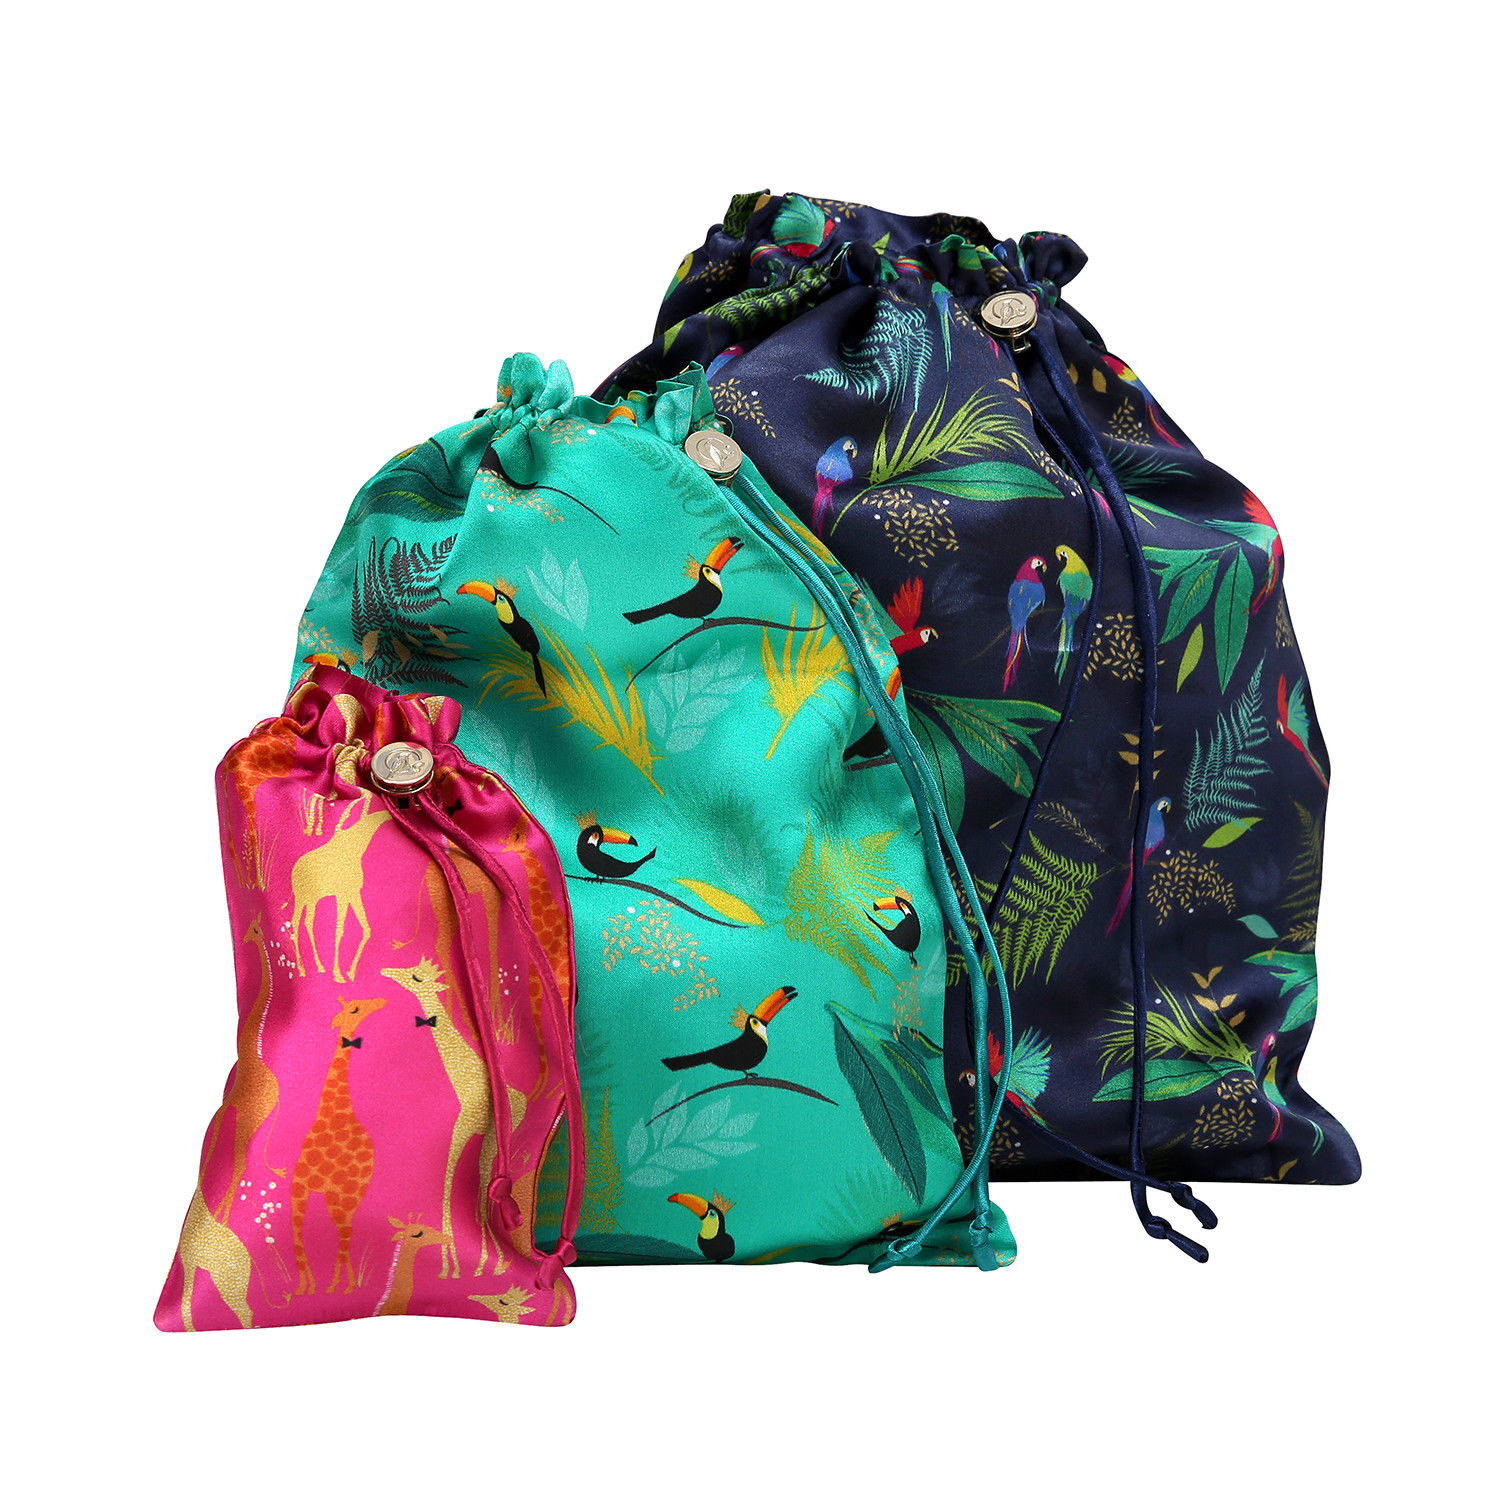 Sara Miller – Set of 3 Luxury Silk Tropical Laundry/Travel Bags in Gift Box